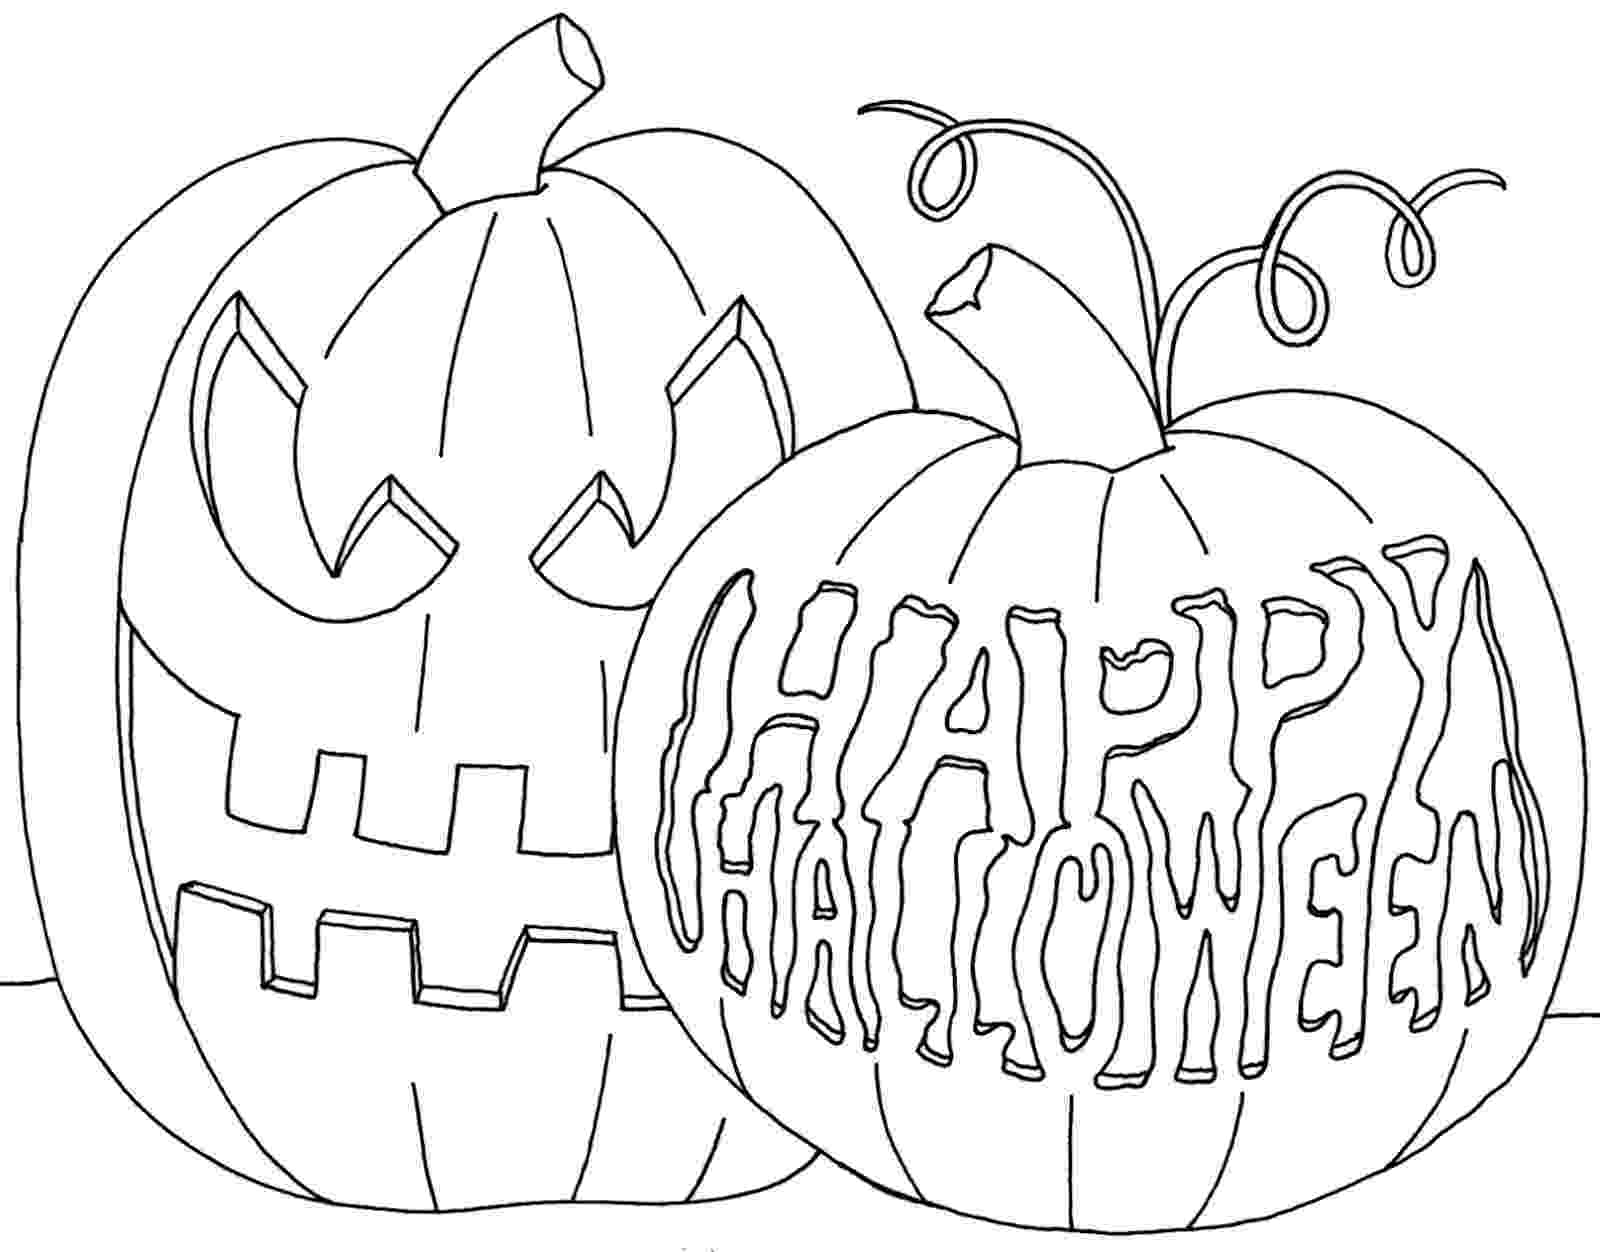 halloween pumpkins to color and print free halloween printable coloring book pages to color print halloween pumpkins and